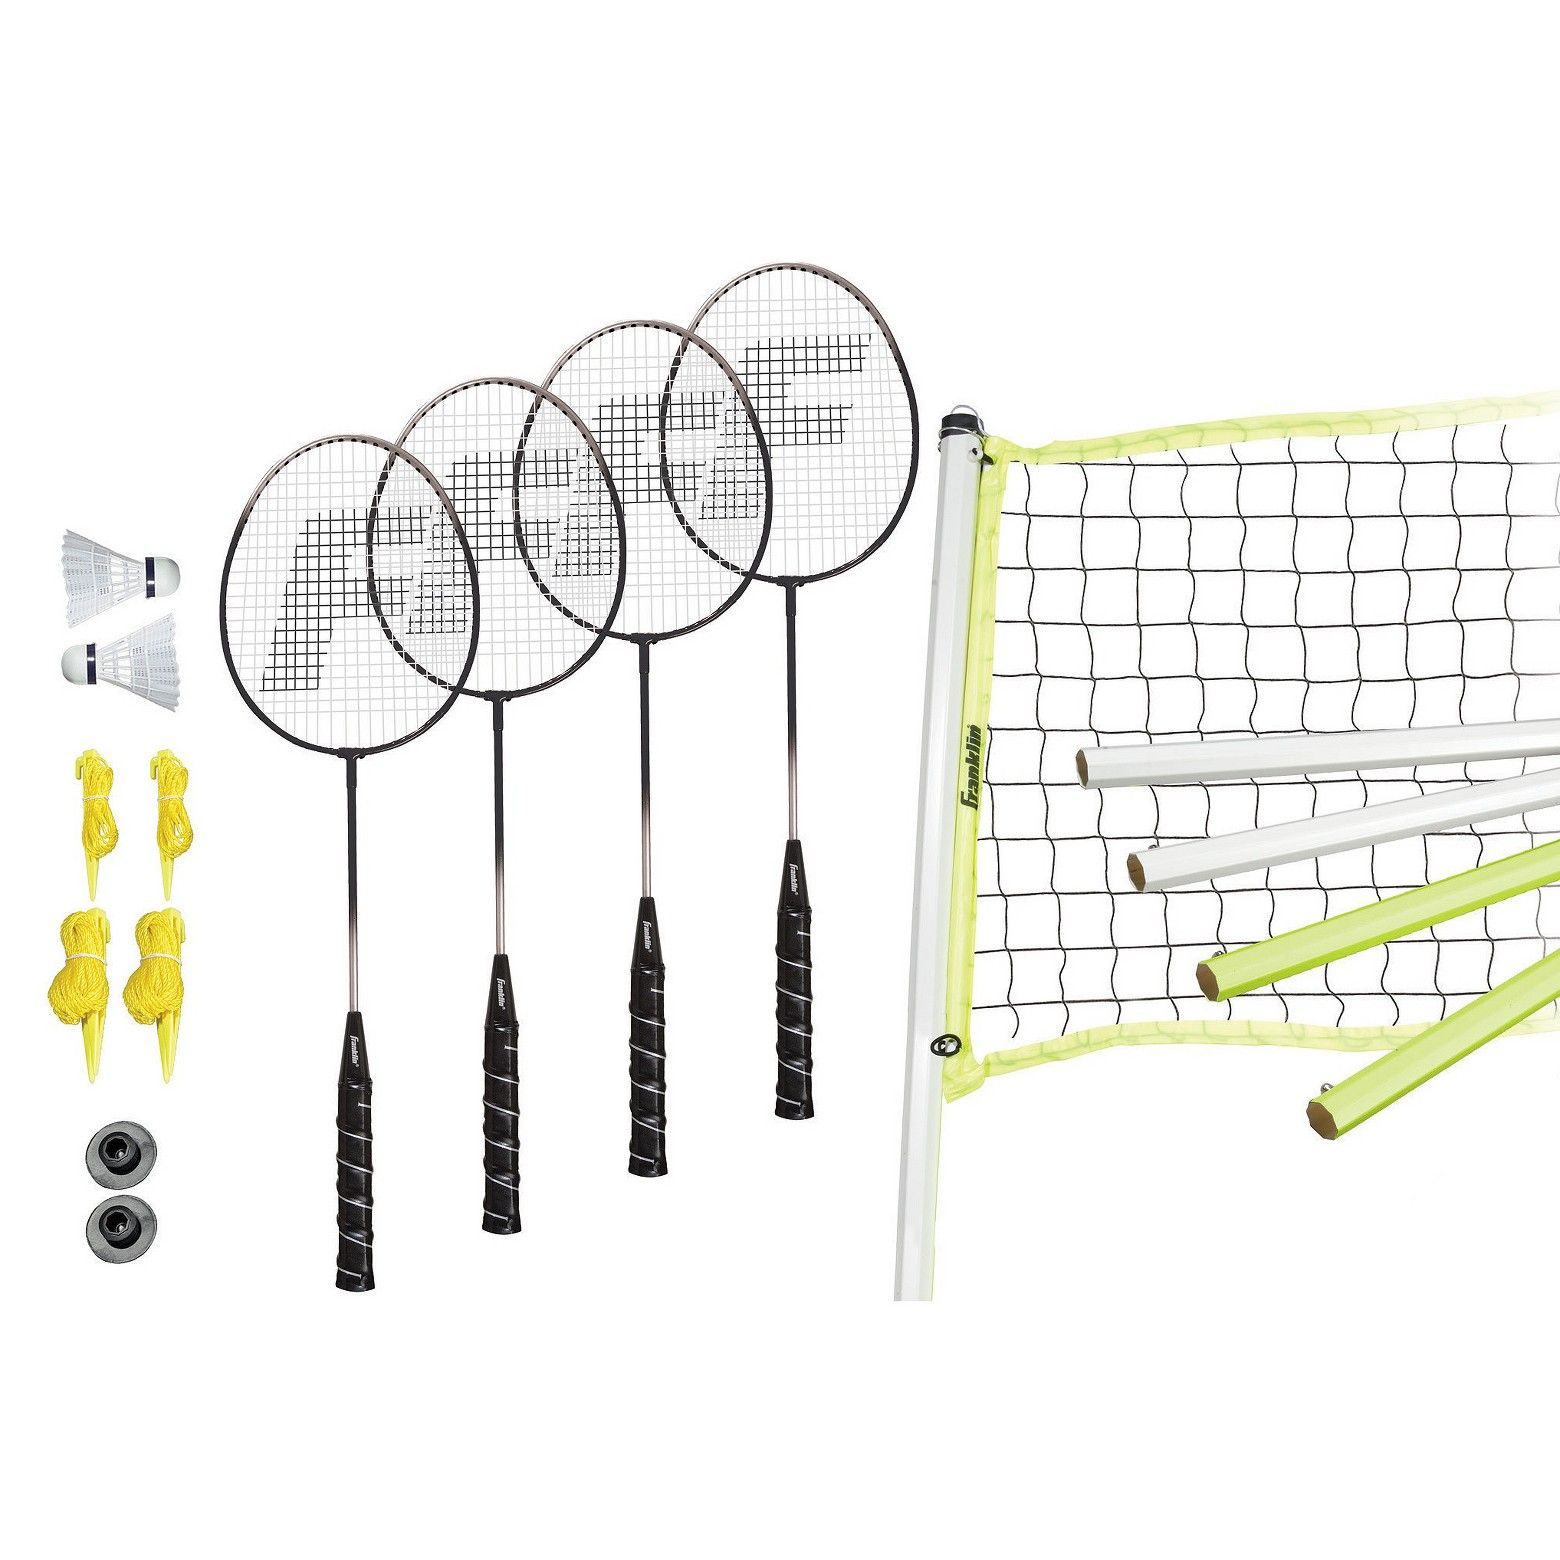 The Franklin Sports Advanced Badminton Set Has Everything You Need For Your Next Backyard Game Of Badminton This Set I Badminton Set Franklin Sports Badminton